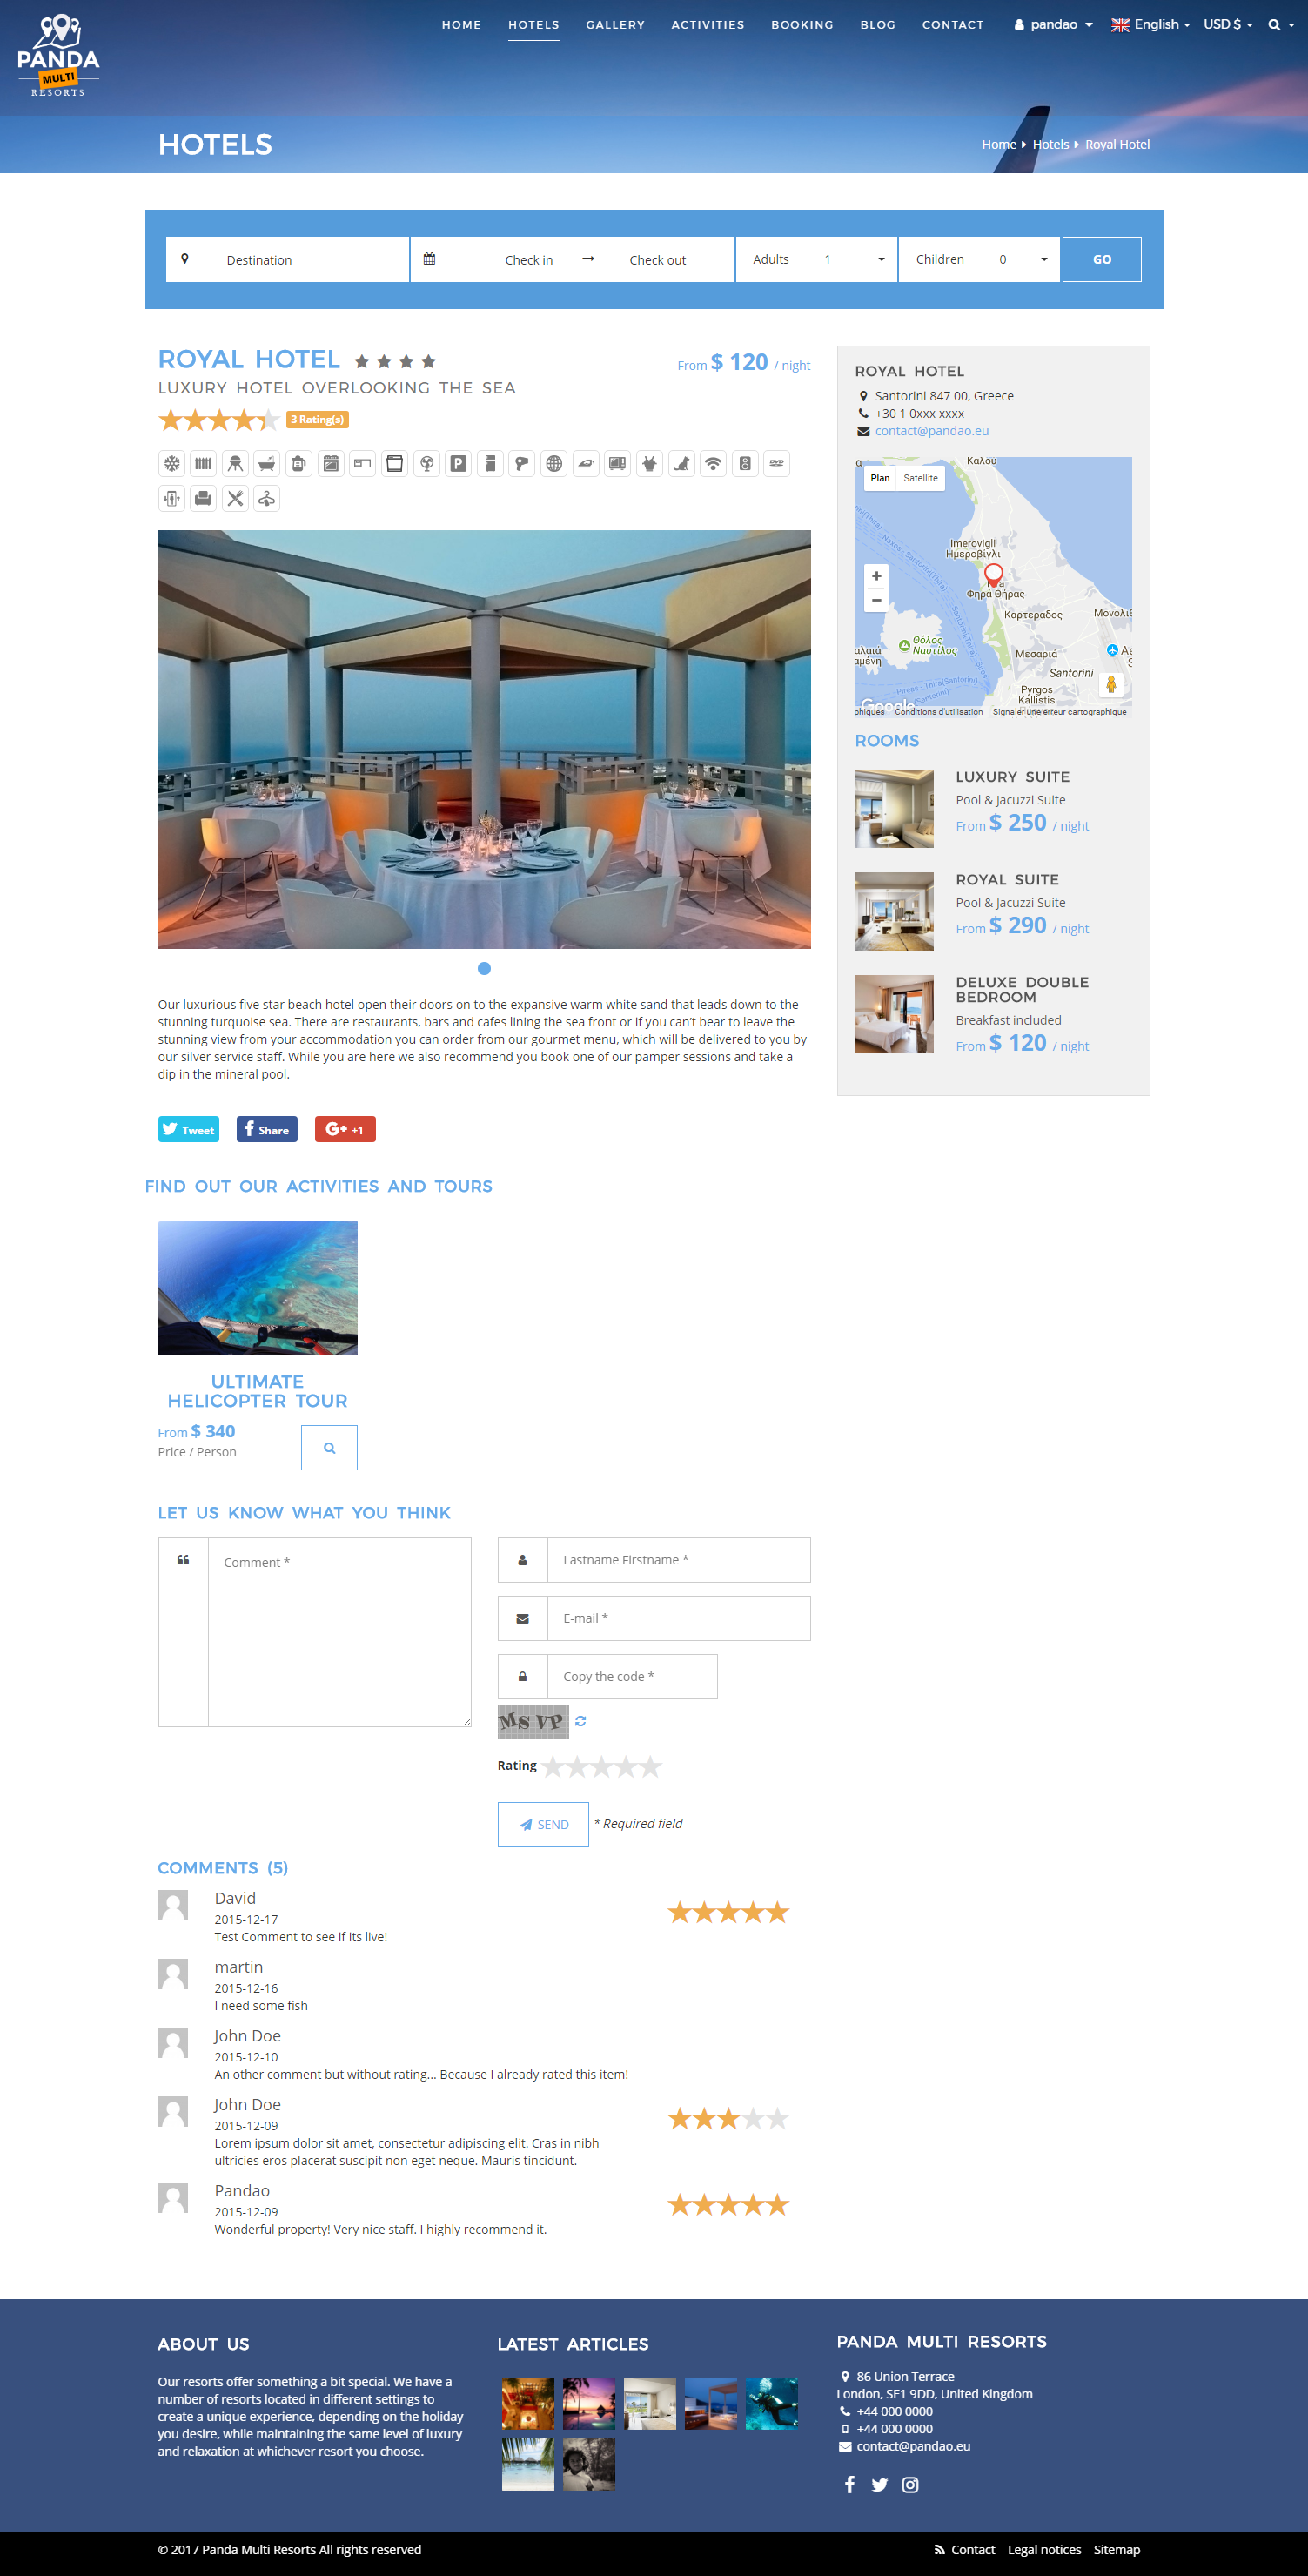 panda multi resorts 5 - booking cms for multi hotelspandao